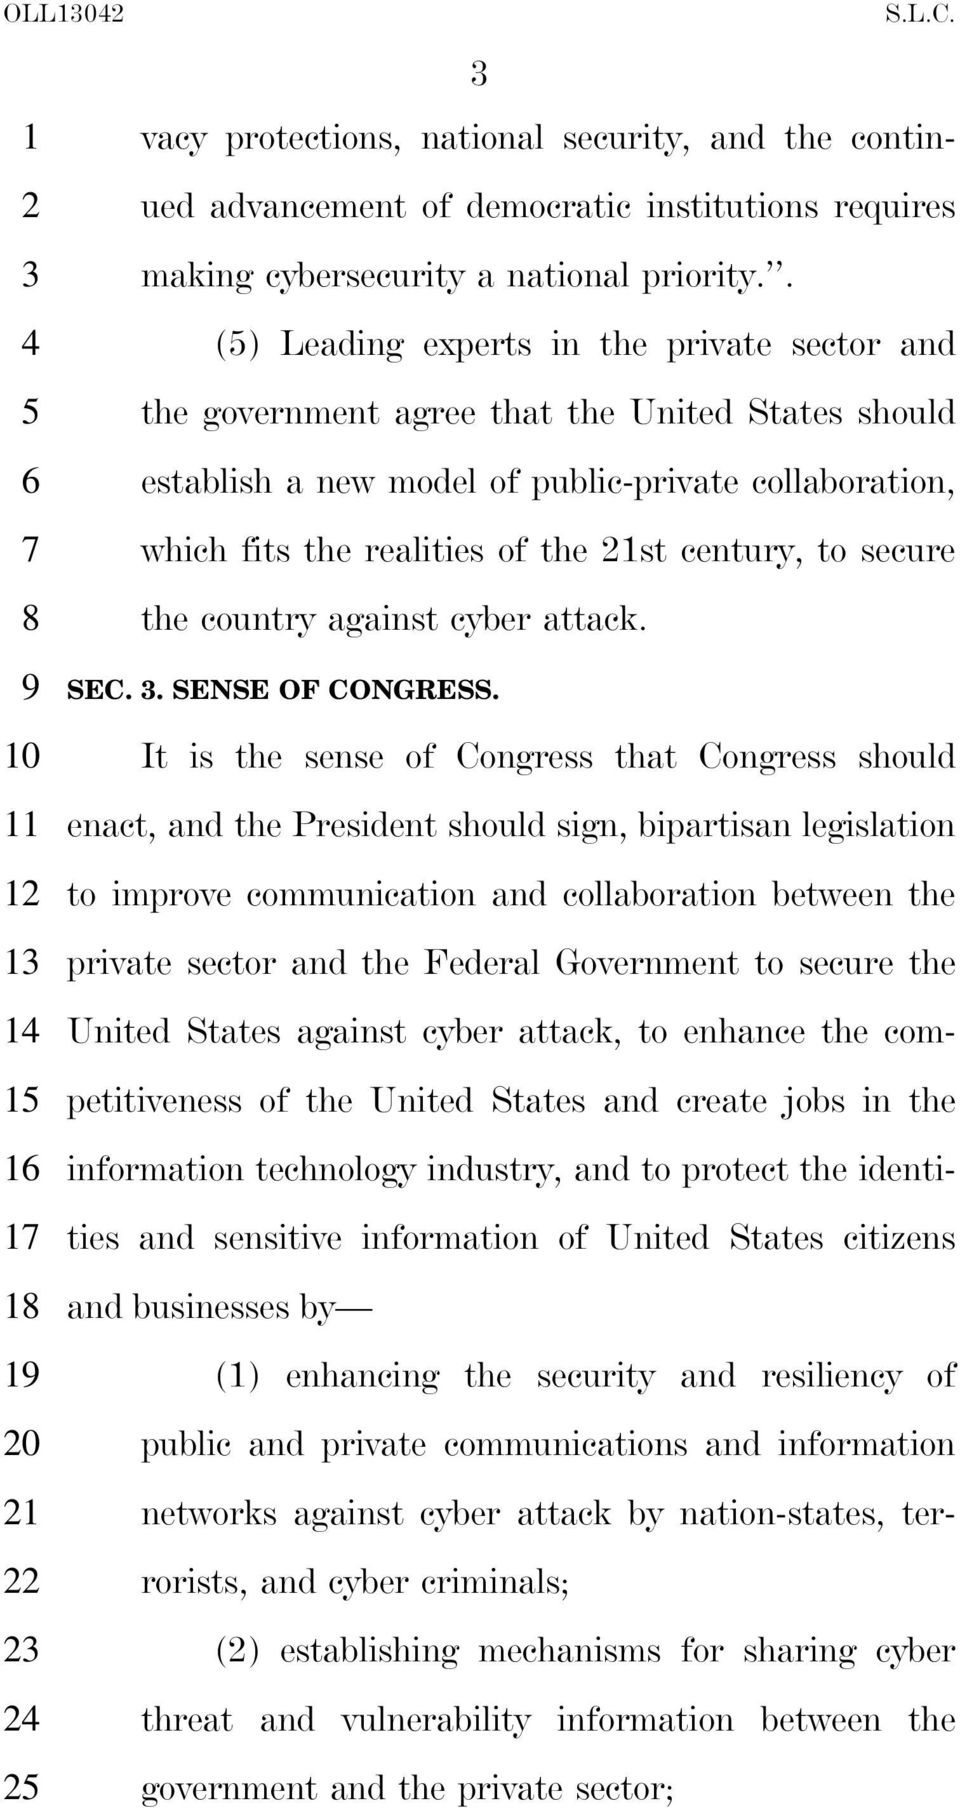 secure 8 the country against cyber attack. 0 8 0 SEC.. SENSE OF CONGRESS.